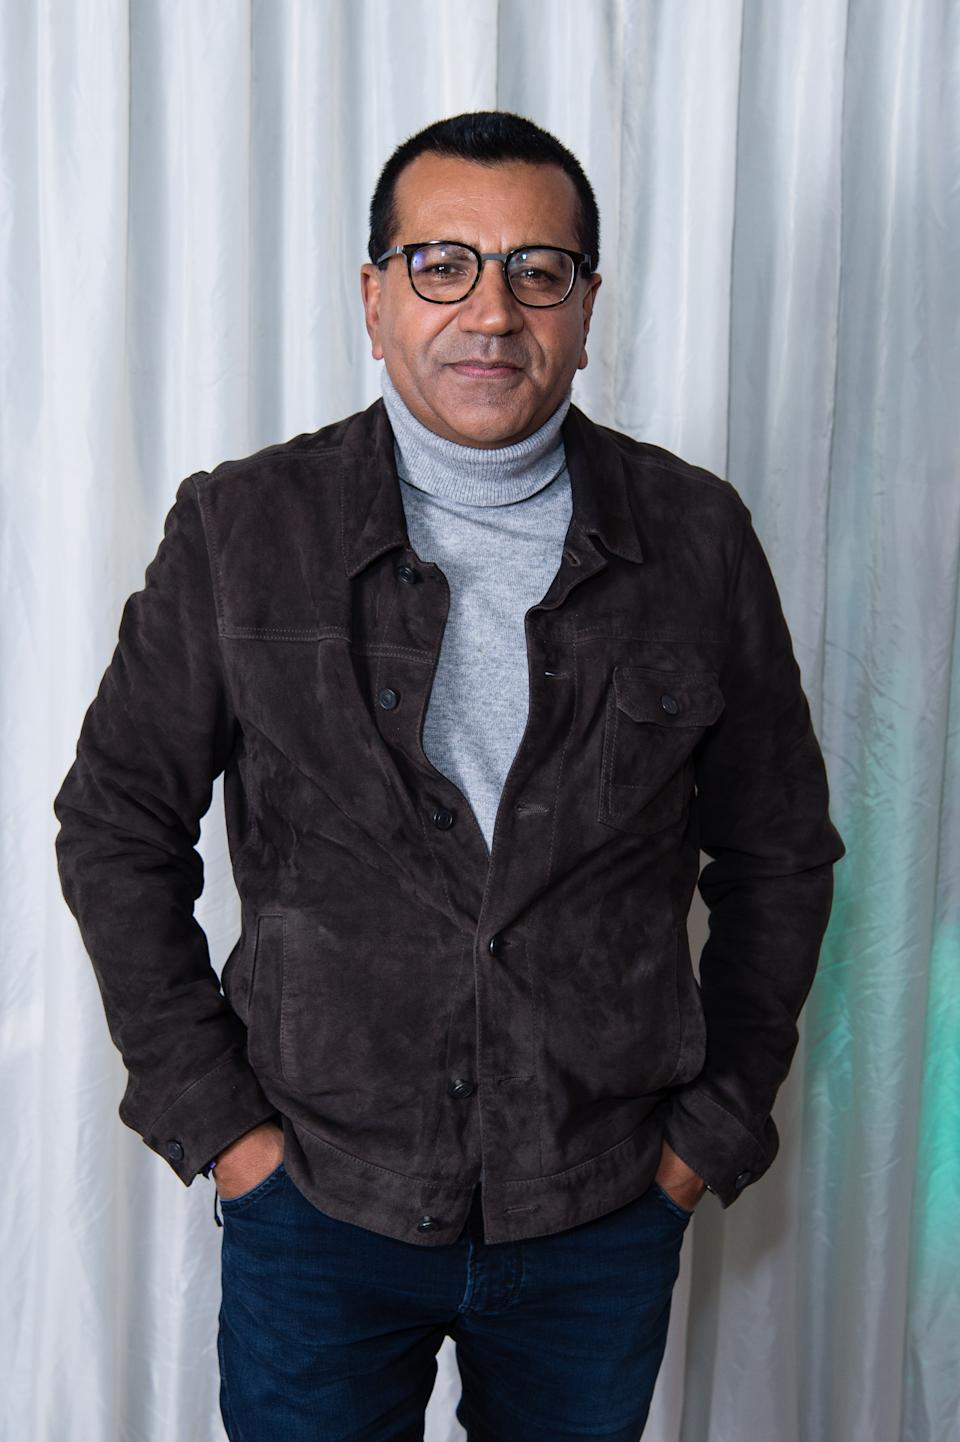 """LONDON, ENGLAND - NOVEMBER 23: Martin Bashir backstage during """"X Factor Celebrity"""" at LH2 Studios on November 23, 2019 in London, England. (Photo by Jeff Spicer/Getty Images)"""